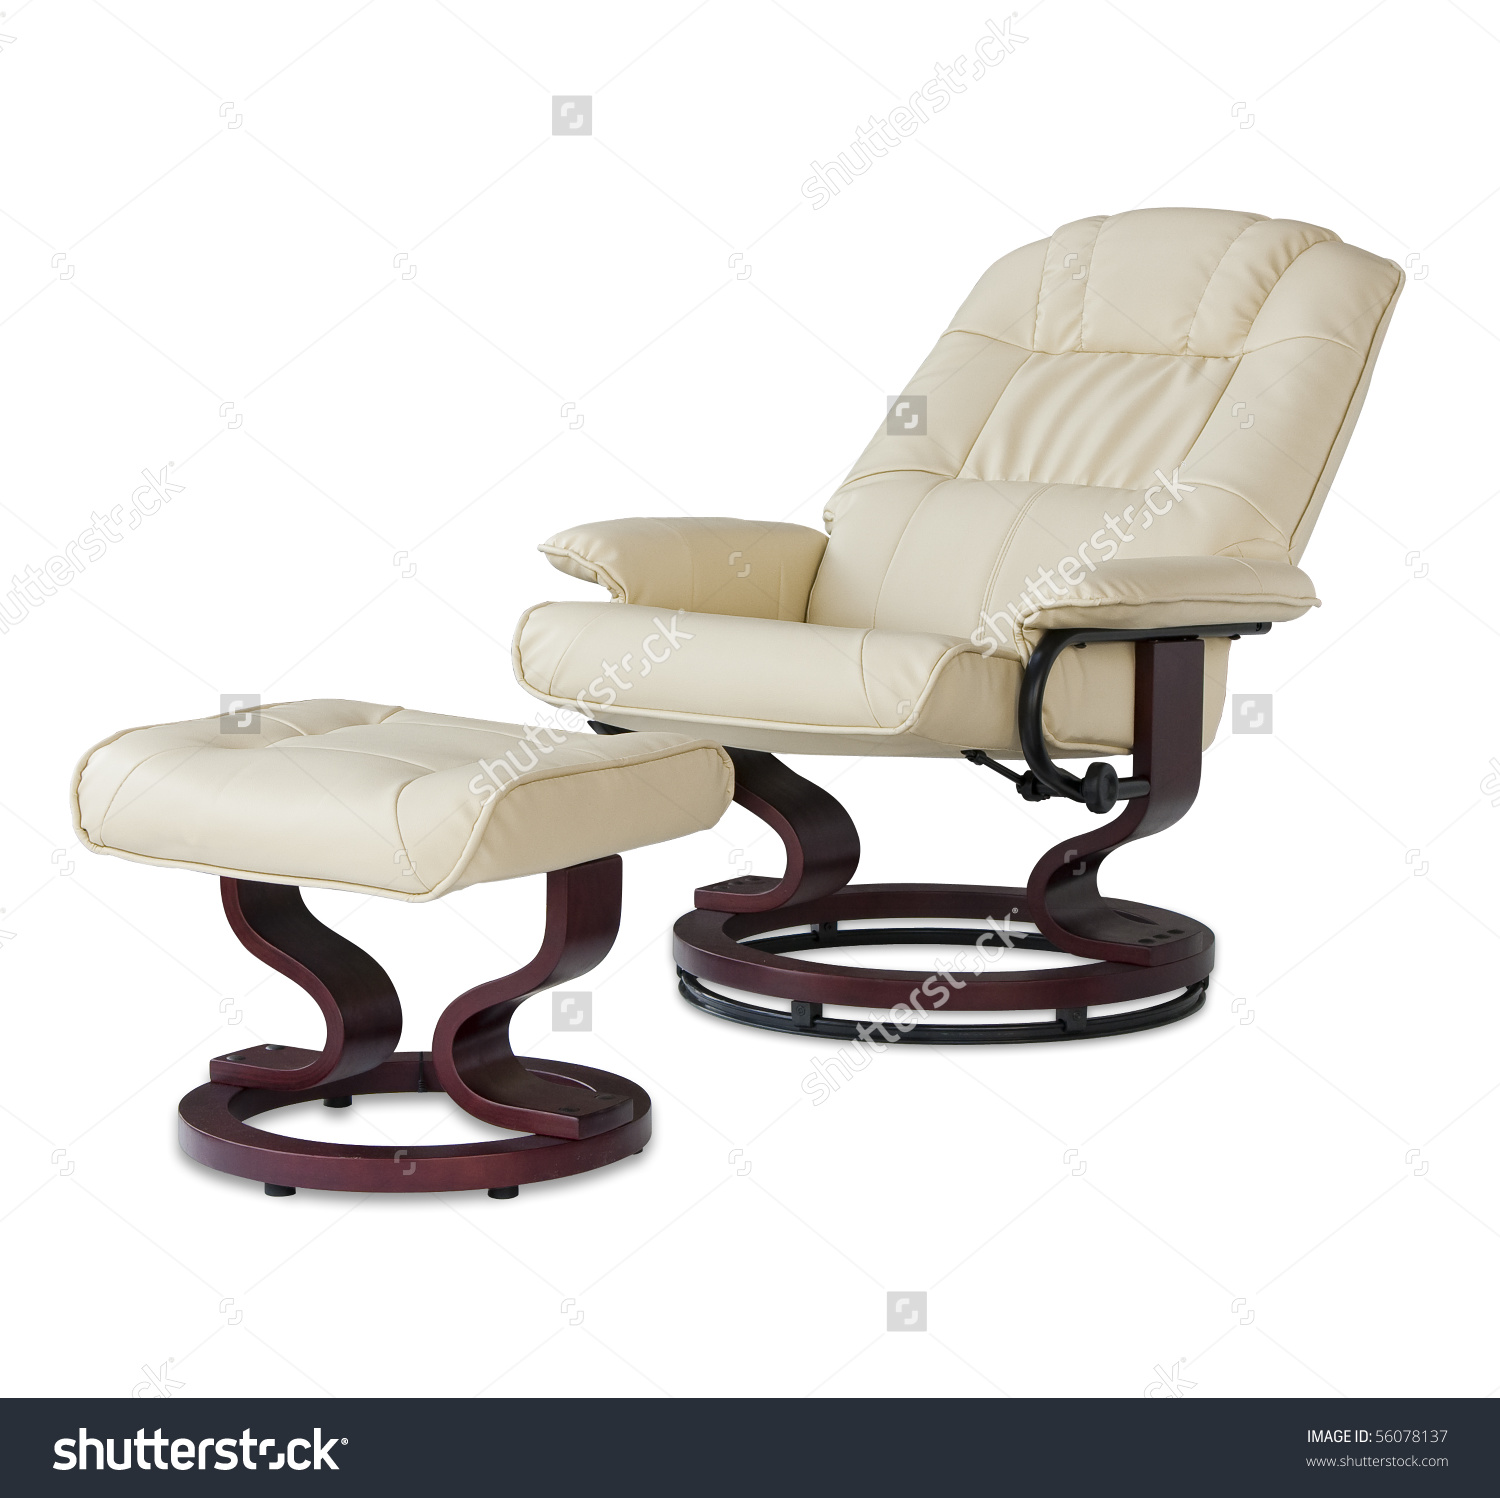 Reclining Leather Massage Chair Foot Rest Stock Photo 56078137.